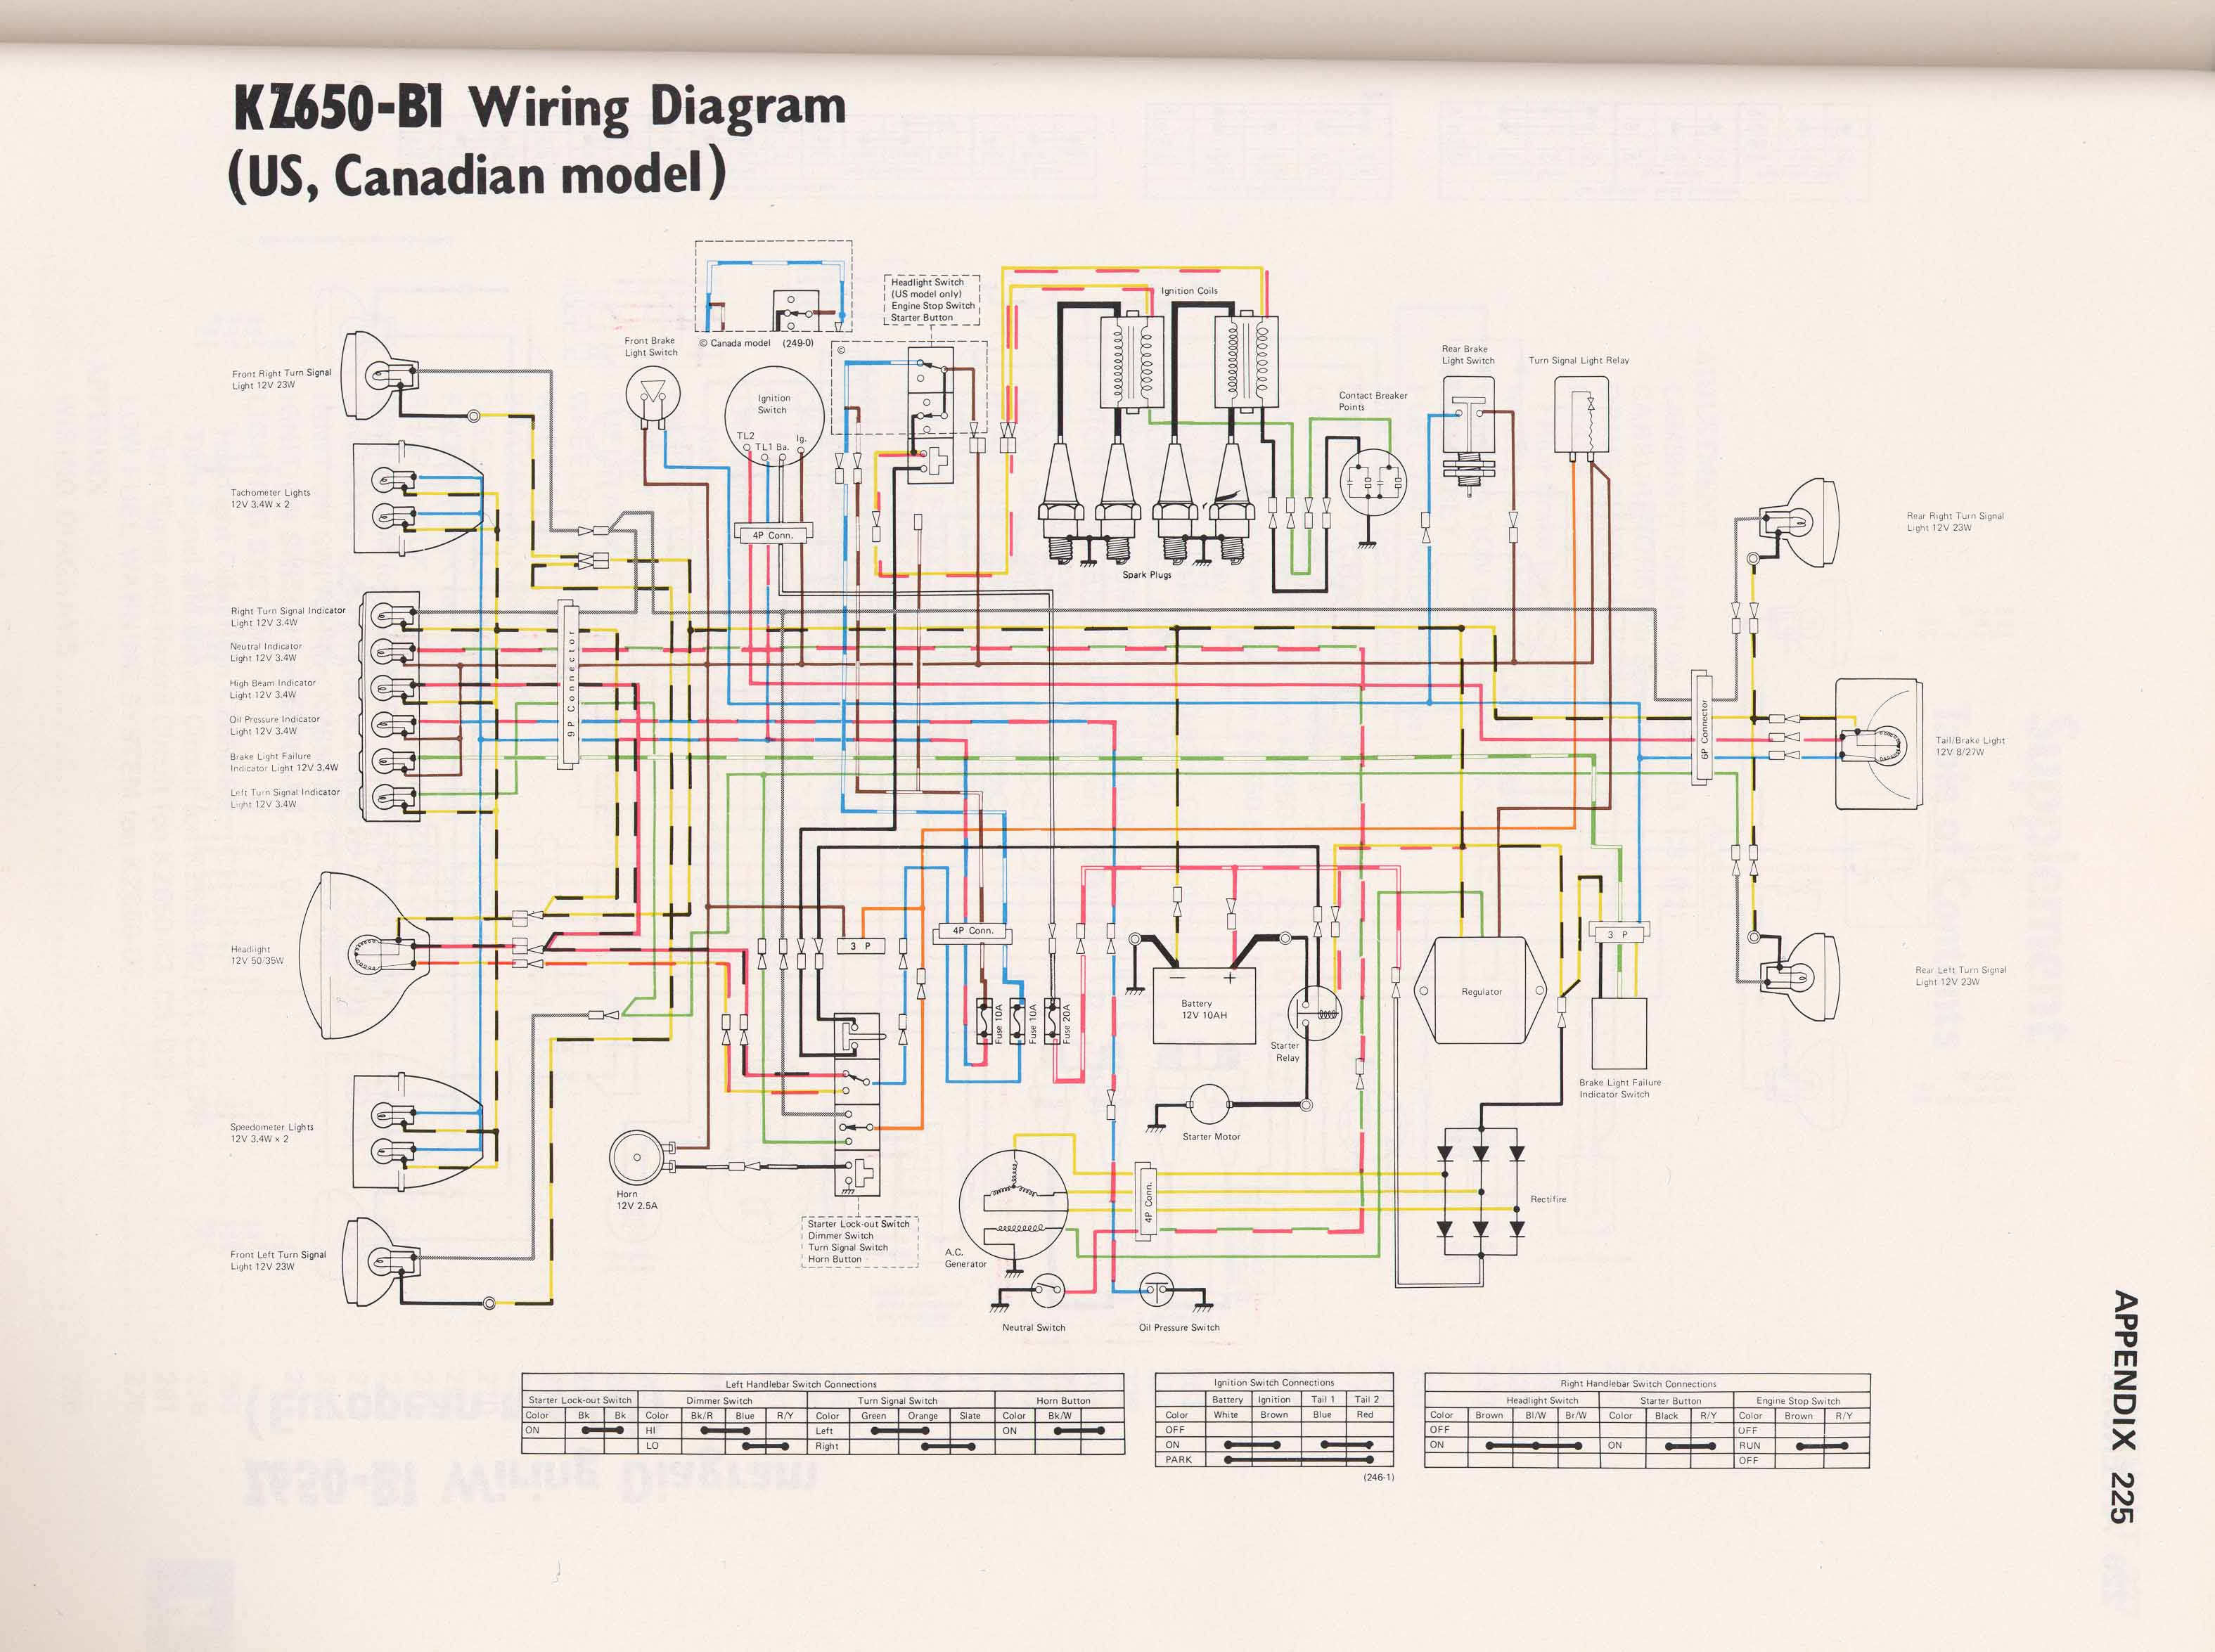 KZ650 B1 kz650 info wiring diagrams 1978 ford wiring harness at arjmand.co